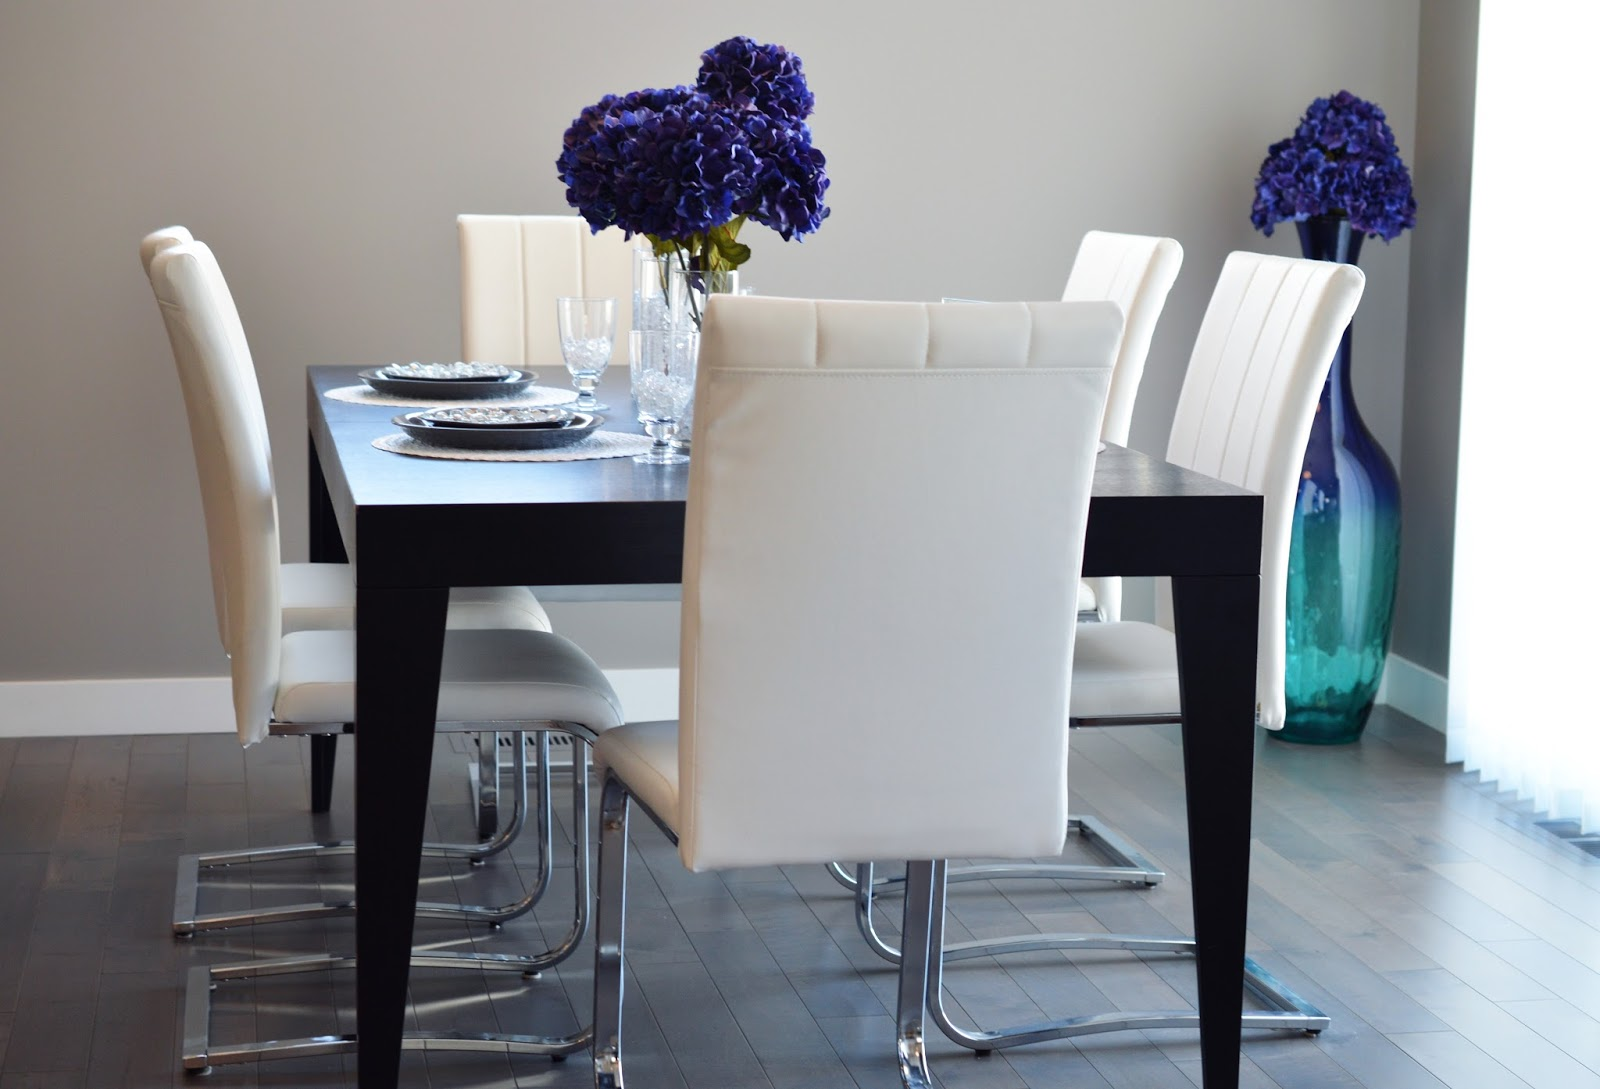 My dining room wish list my three and me for My dining room 9 course